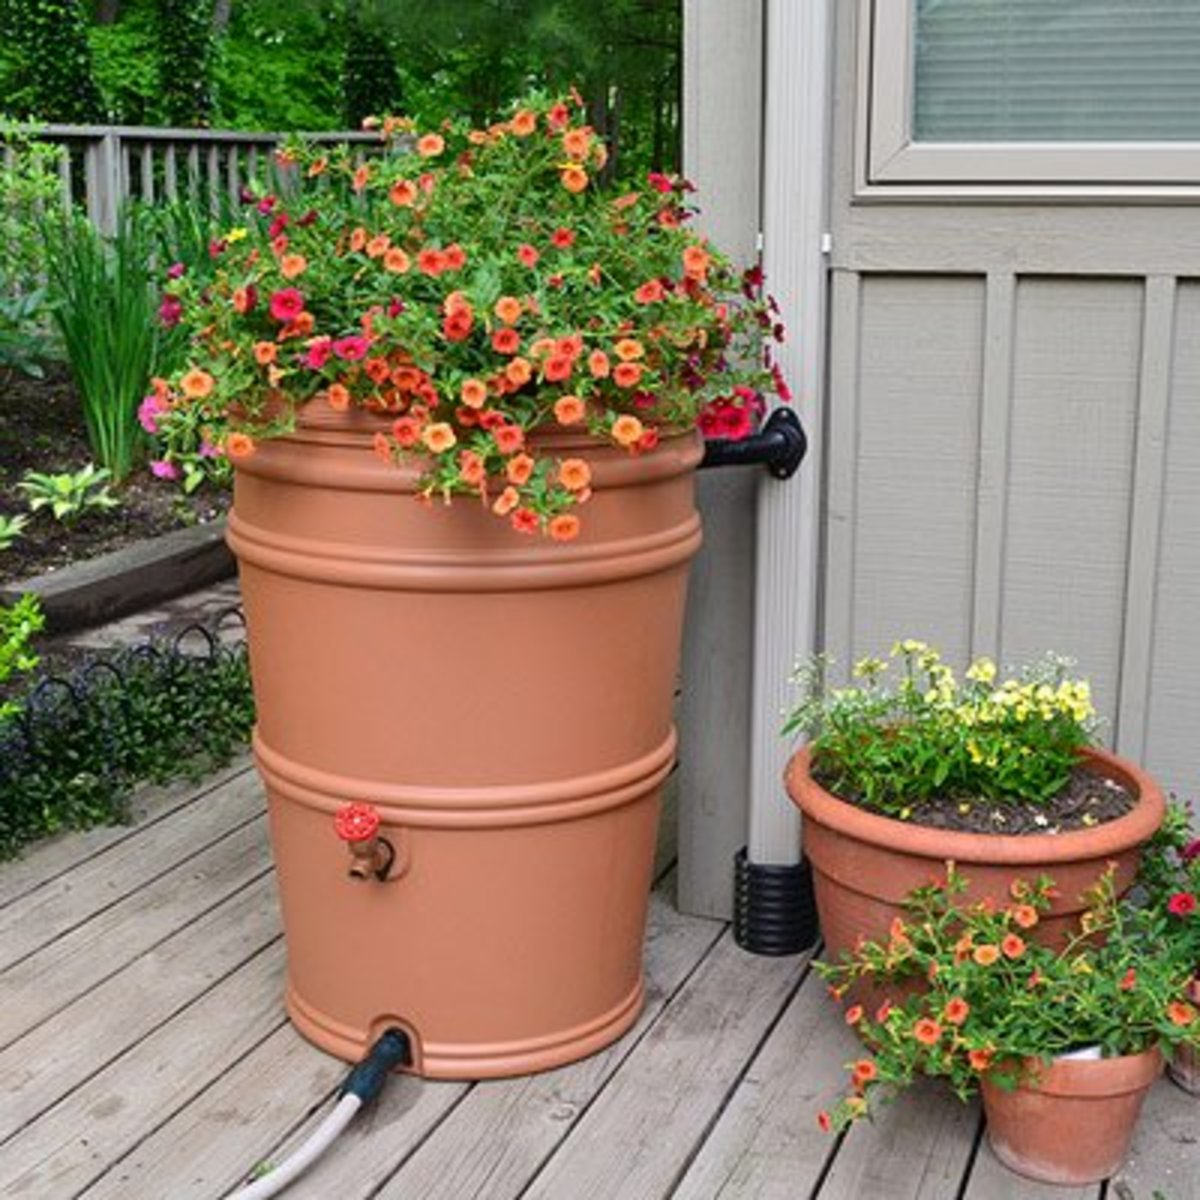 Water-Wise Gardening Tips